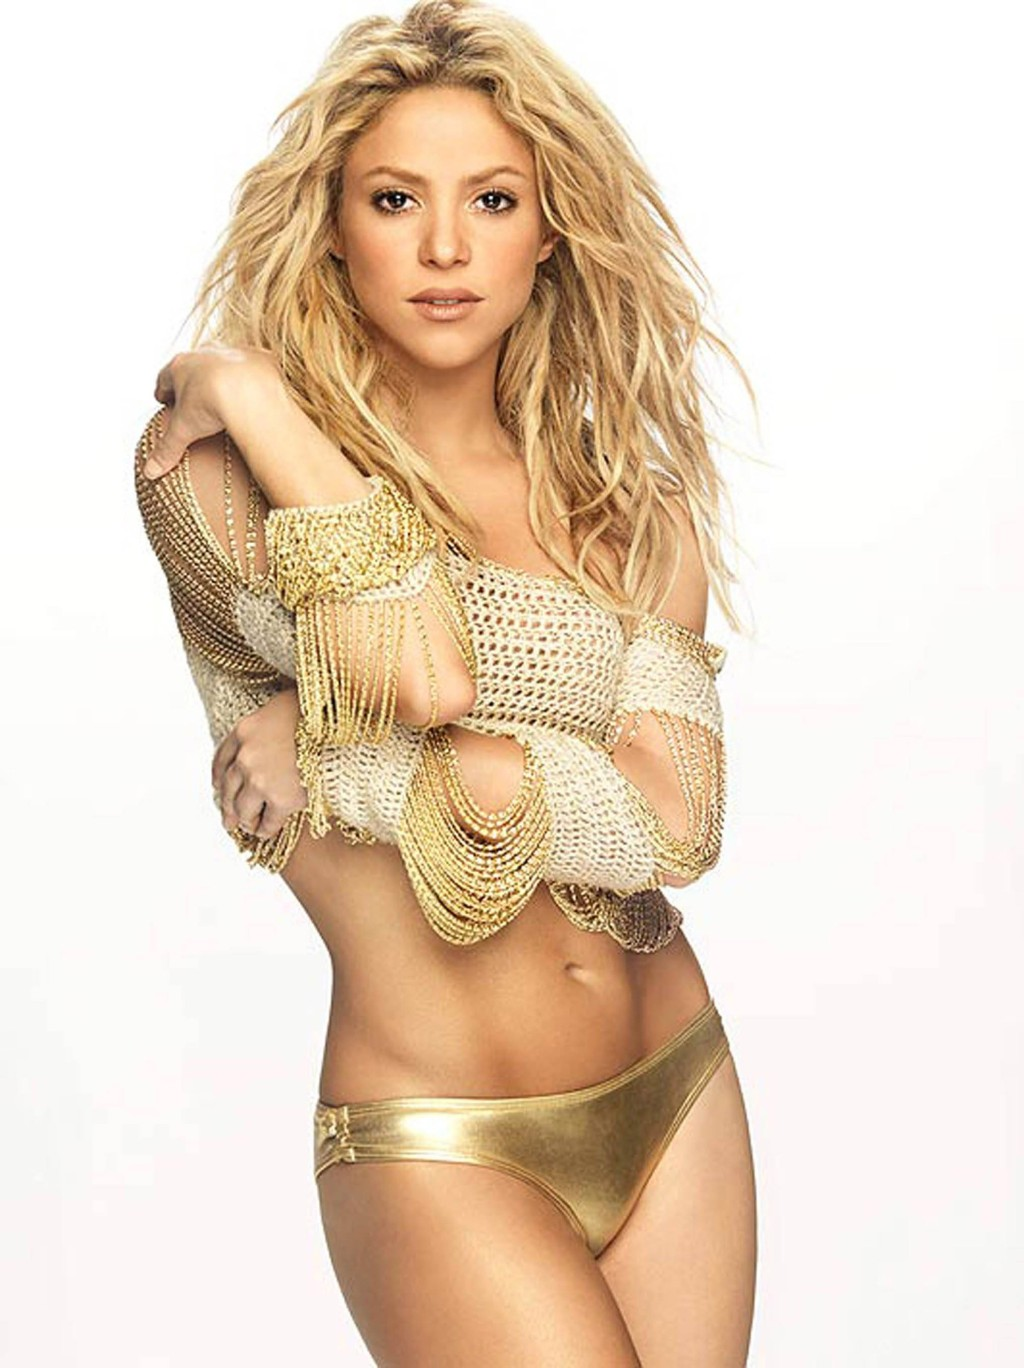 shakira-hot-in-lingerie